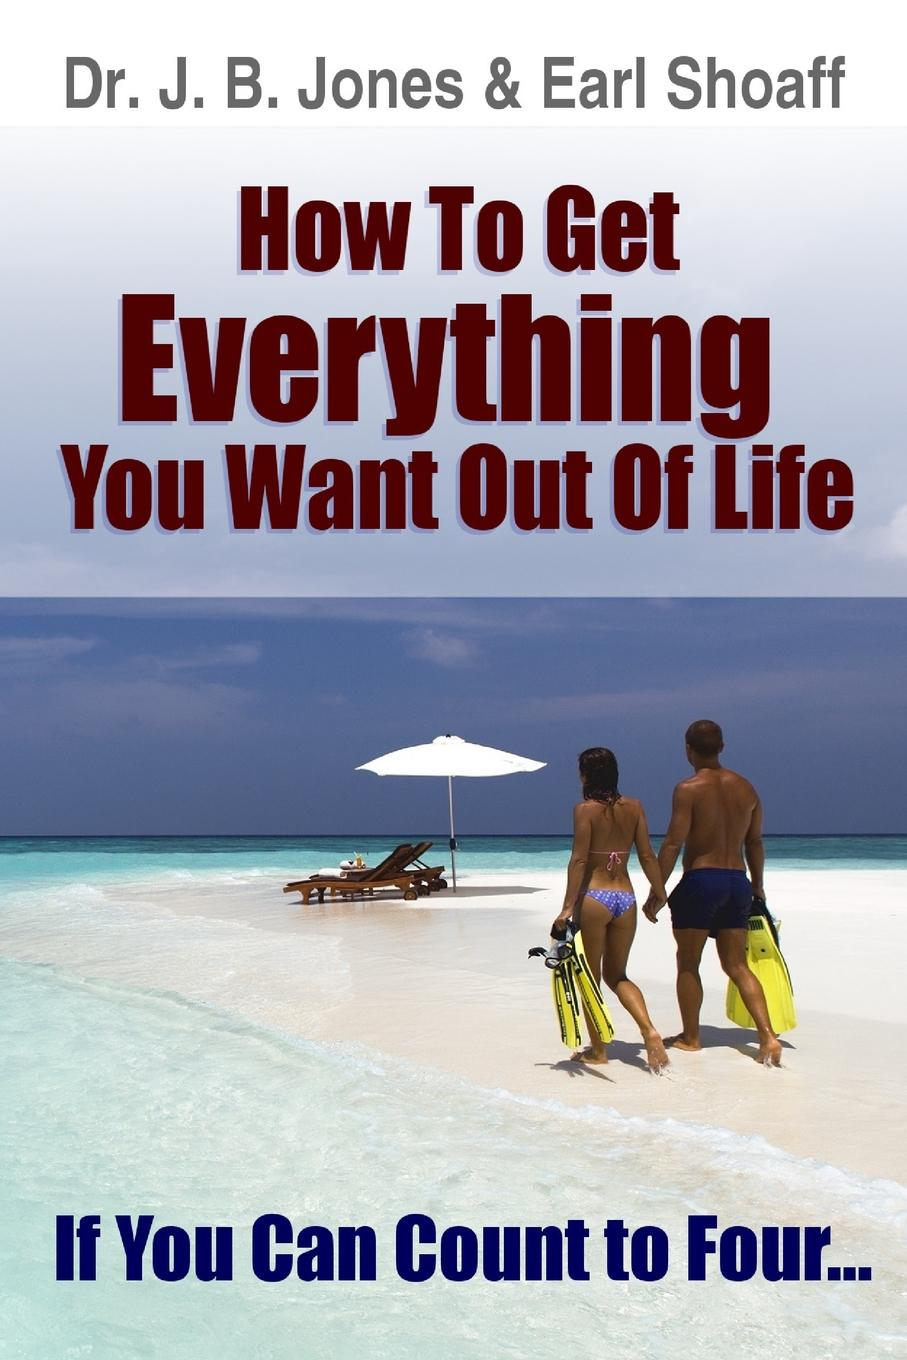 Dr. J. B. Jones, Earl Shoaff How to Get Everything You Want chloe seager editing emma online you can choose who you want to be if only real life were so easy